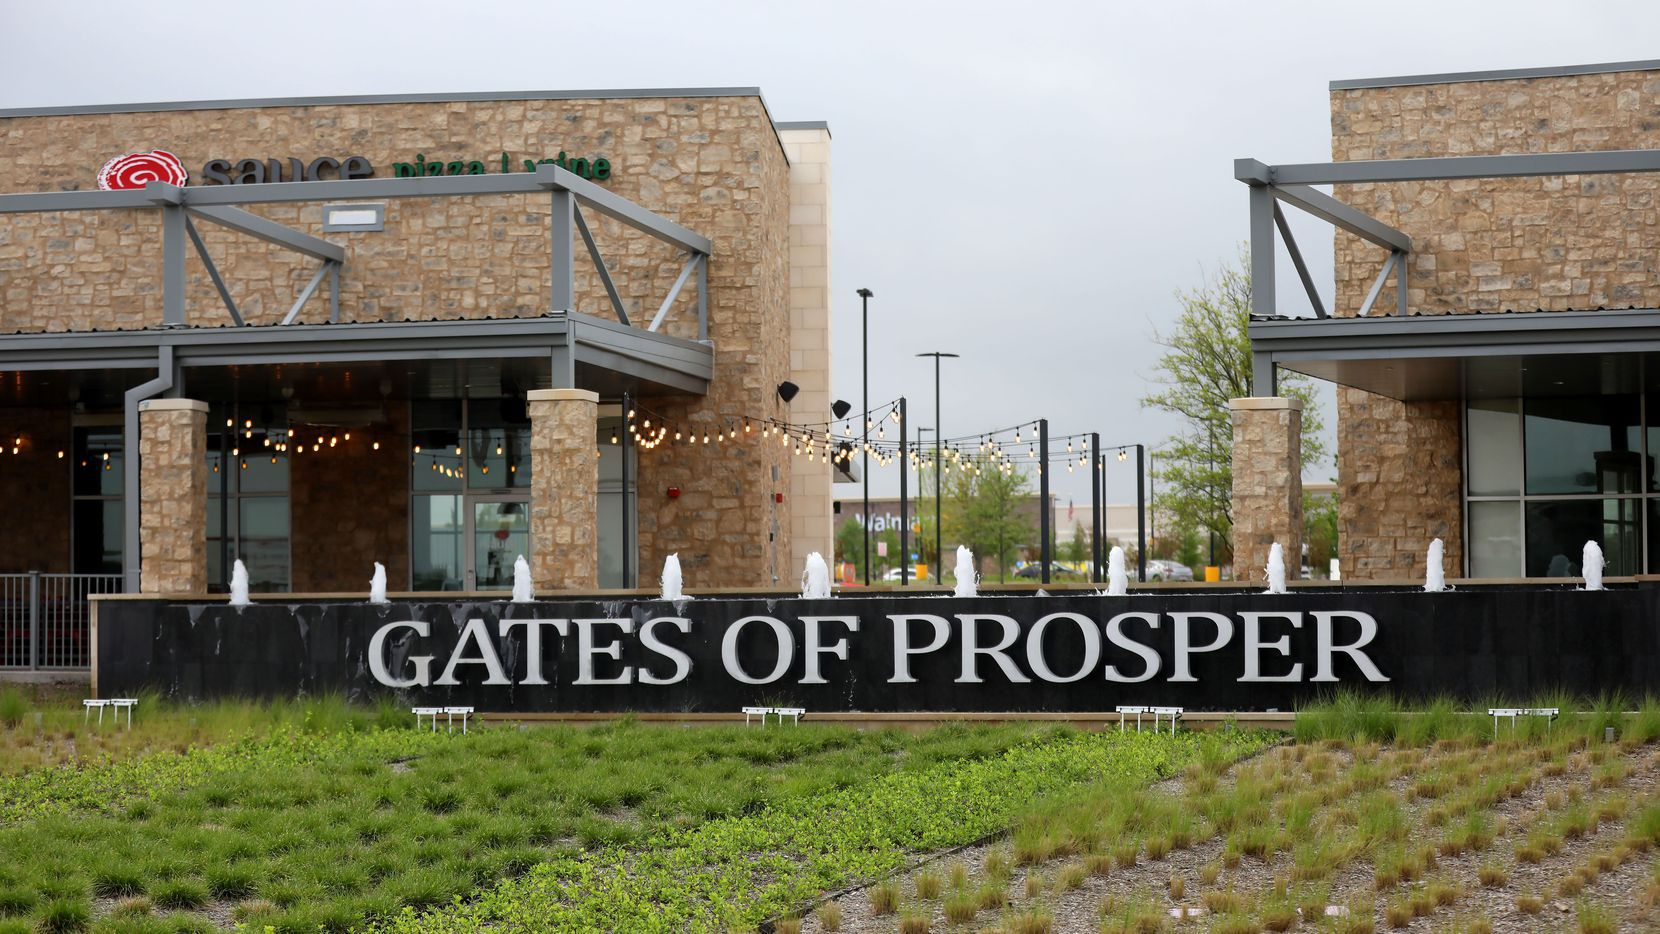 Blue Star Land and Lincoln Property Co. built the Gates of Prosper shopping center at U.S. 380 and Preston Road in Prosper.